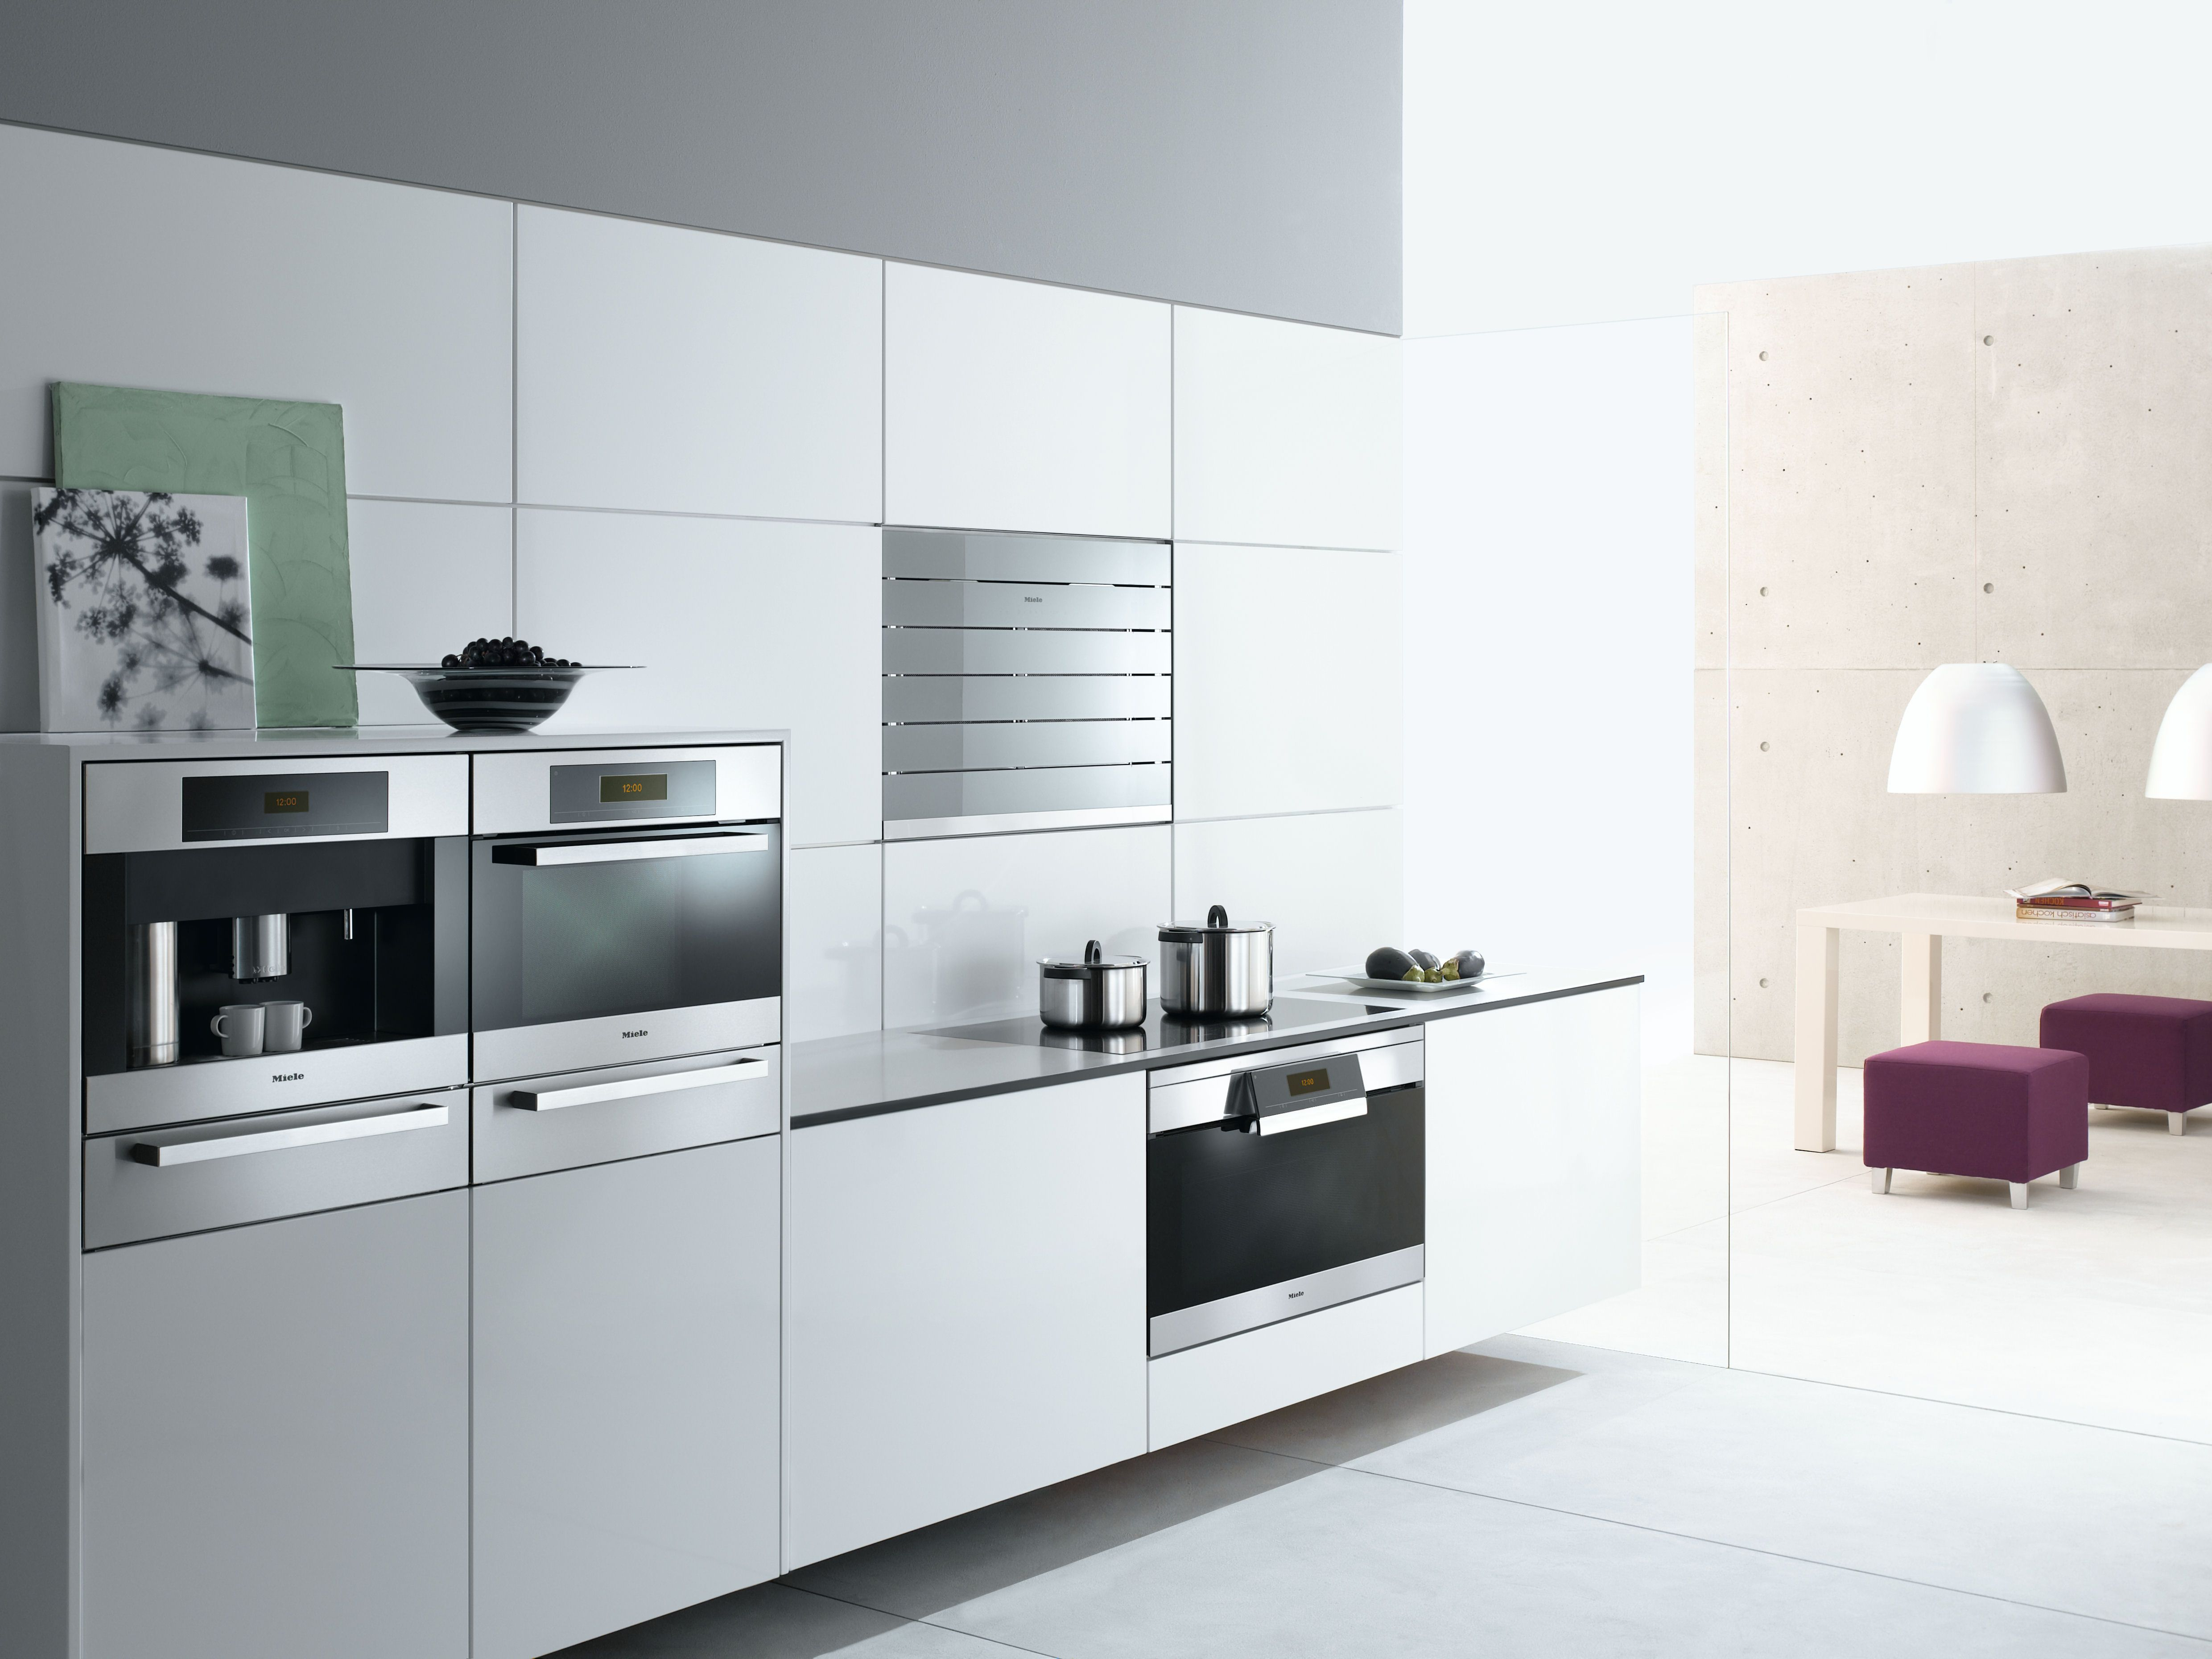 Küche Miele Modern White Kitchen With Miele Appliances | In The